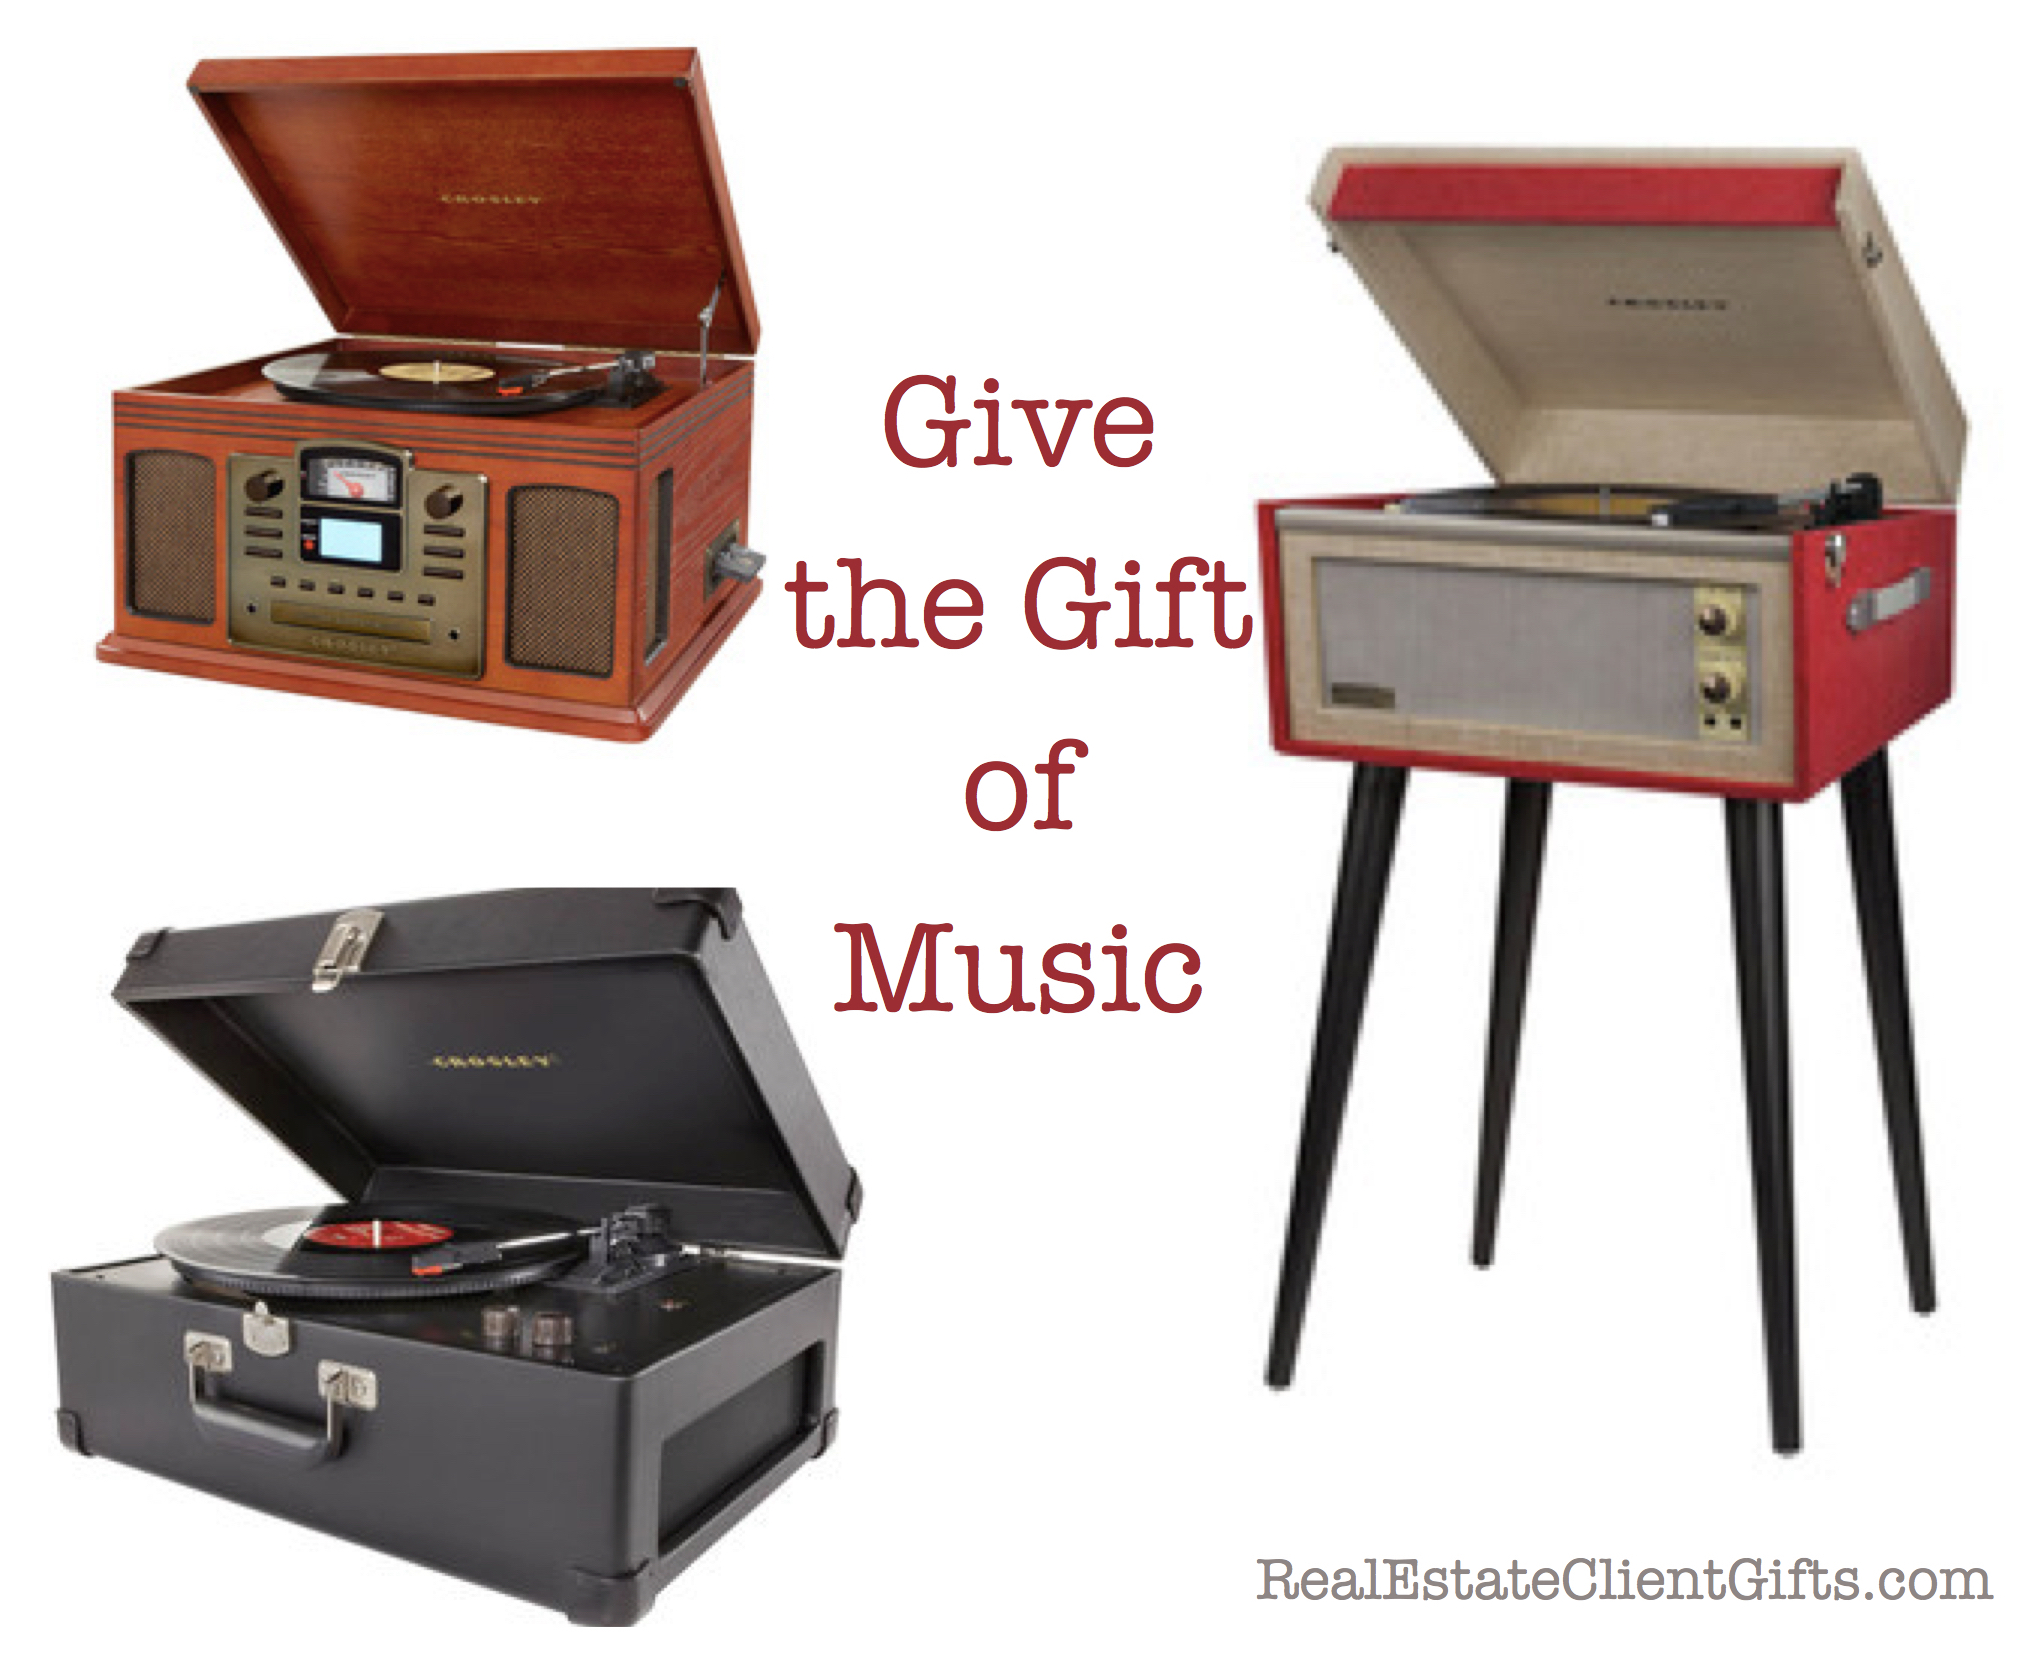 Give The Gift of Music Realtor Closing Gifts, Realtor Closing Gift Ideas Over $100.00